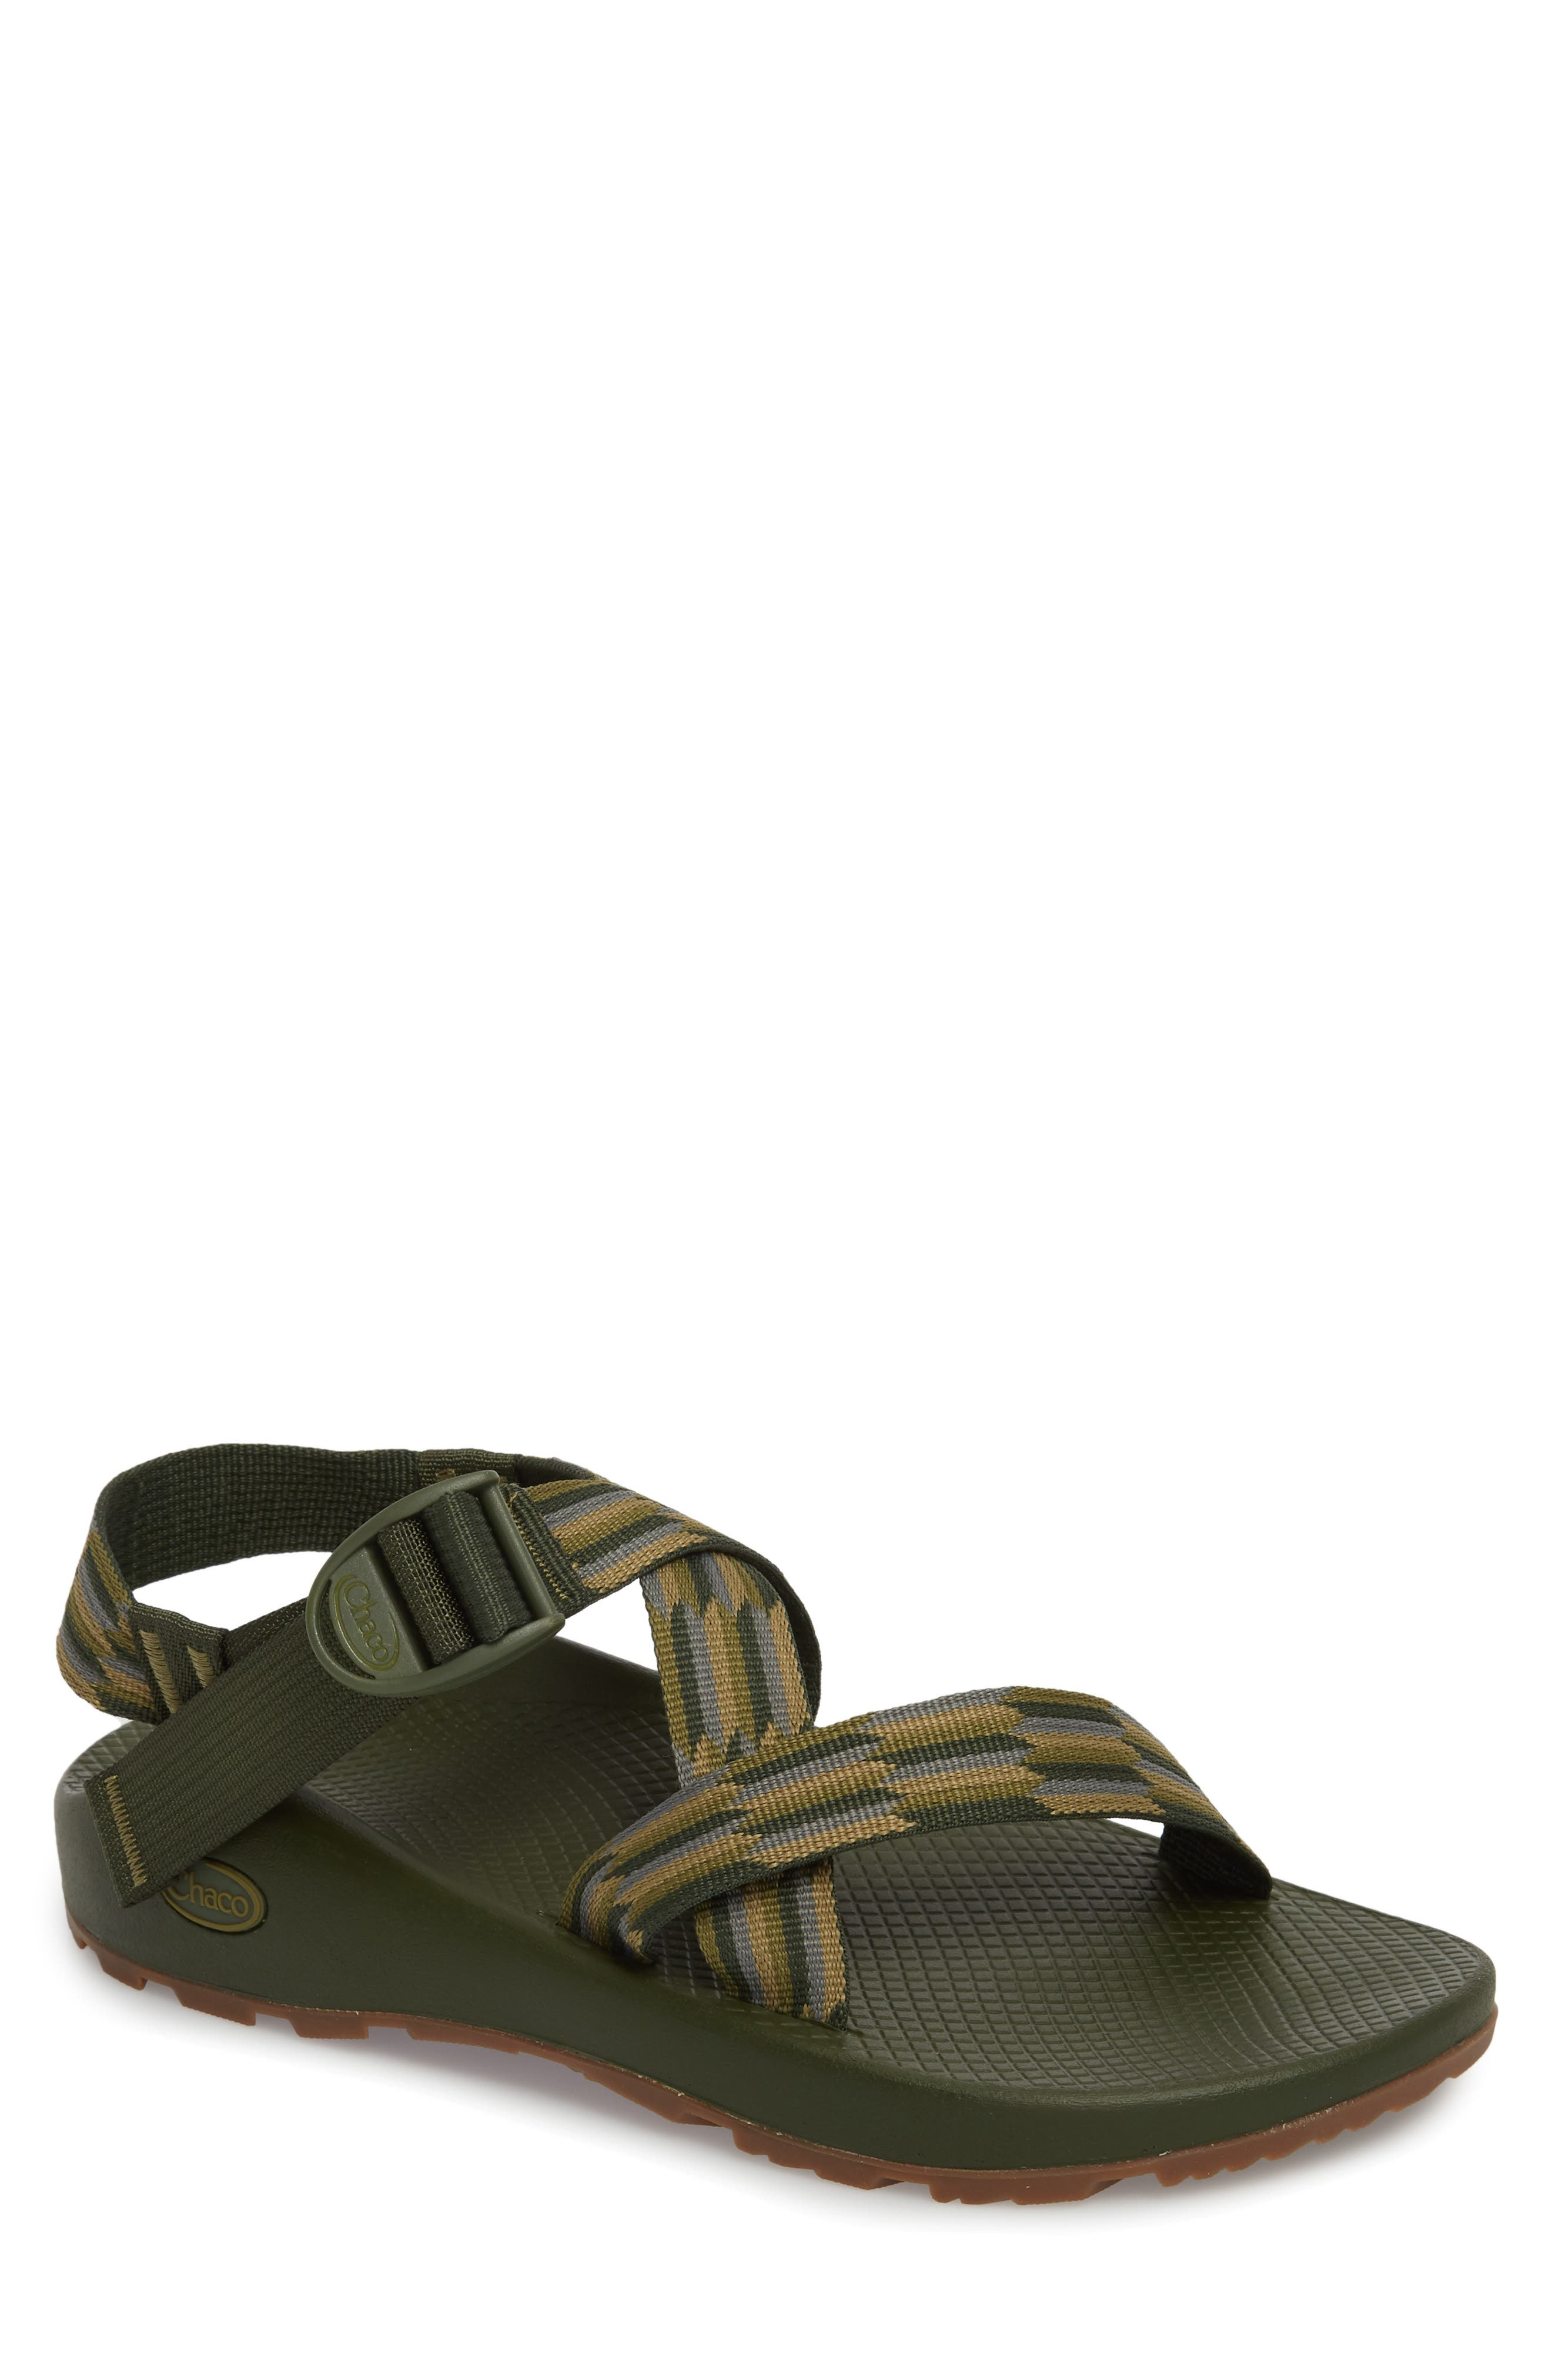 Z/1 Classic Sport Sandal,                         Main,                         color, Accordian Green